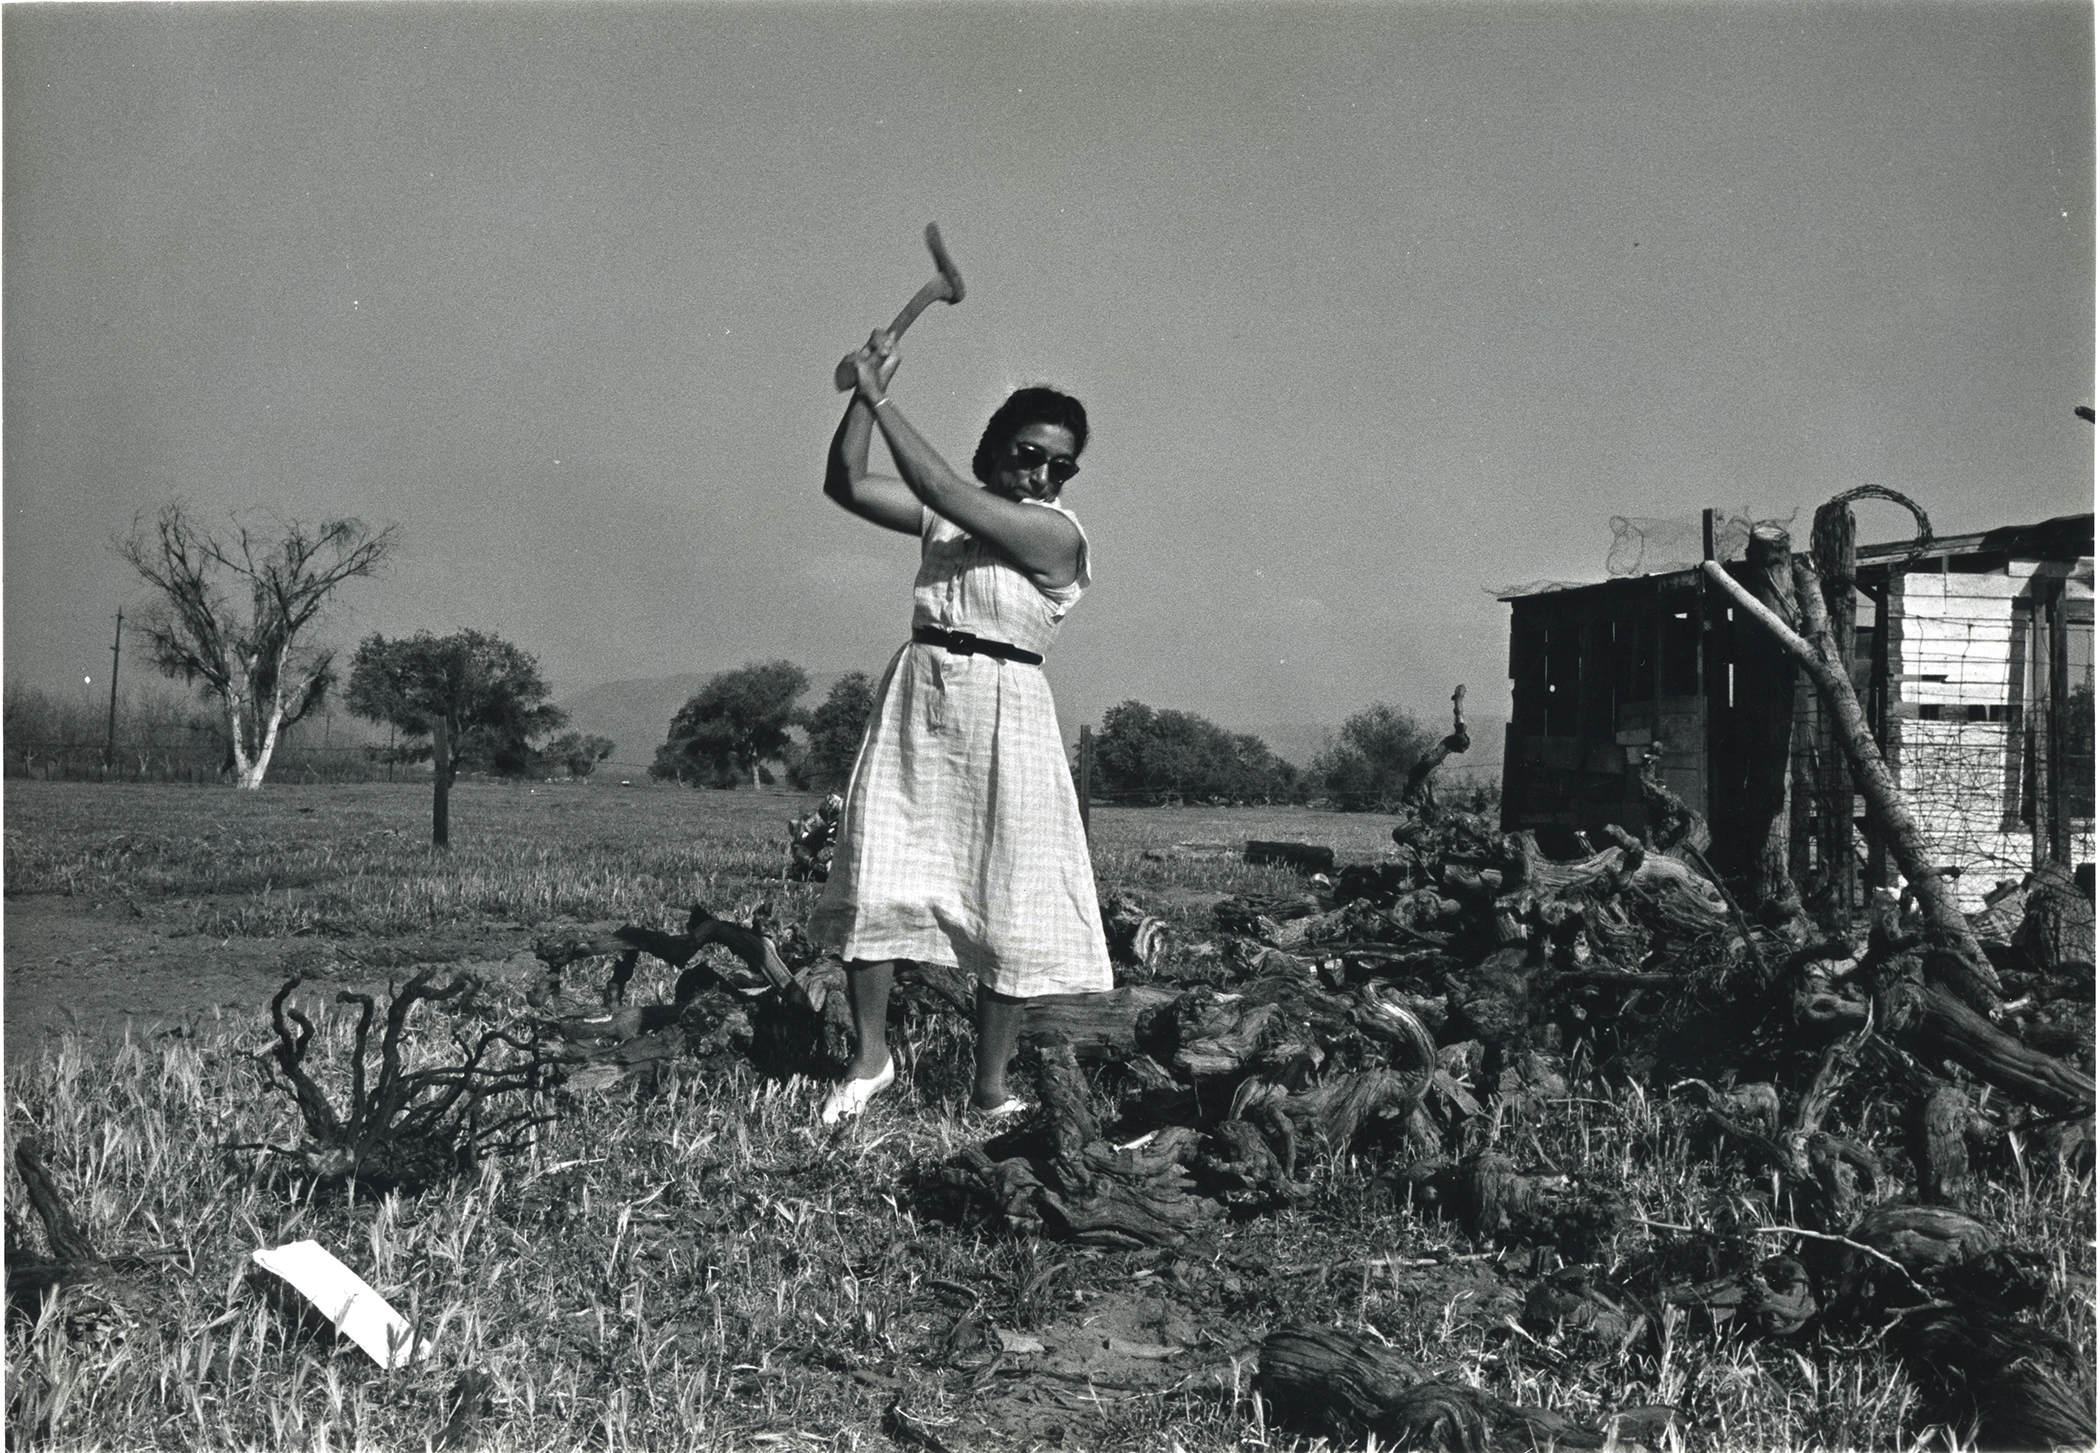 Maria chops wood in her home in rural California. Credit: © 1978 George Ballis/Take Stock